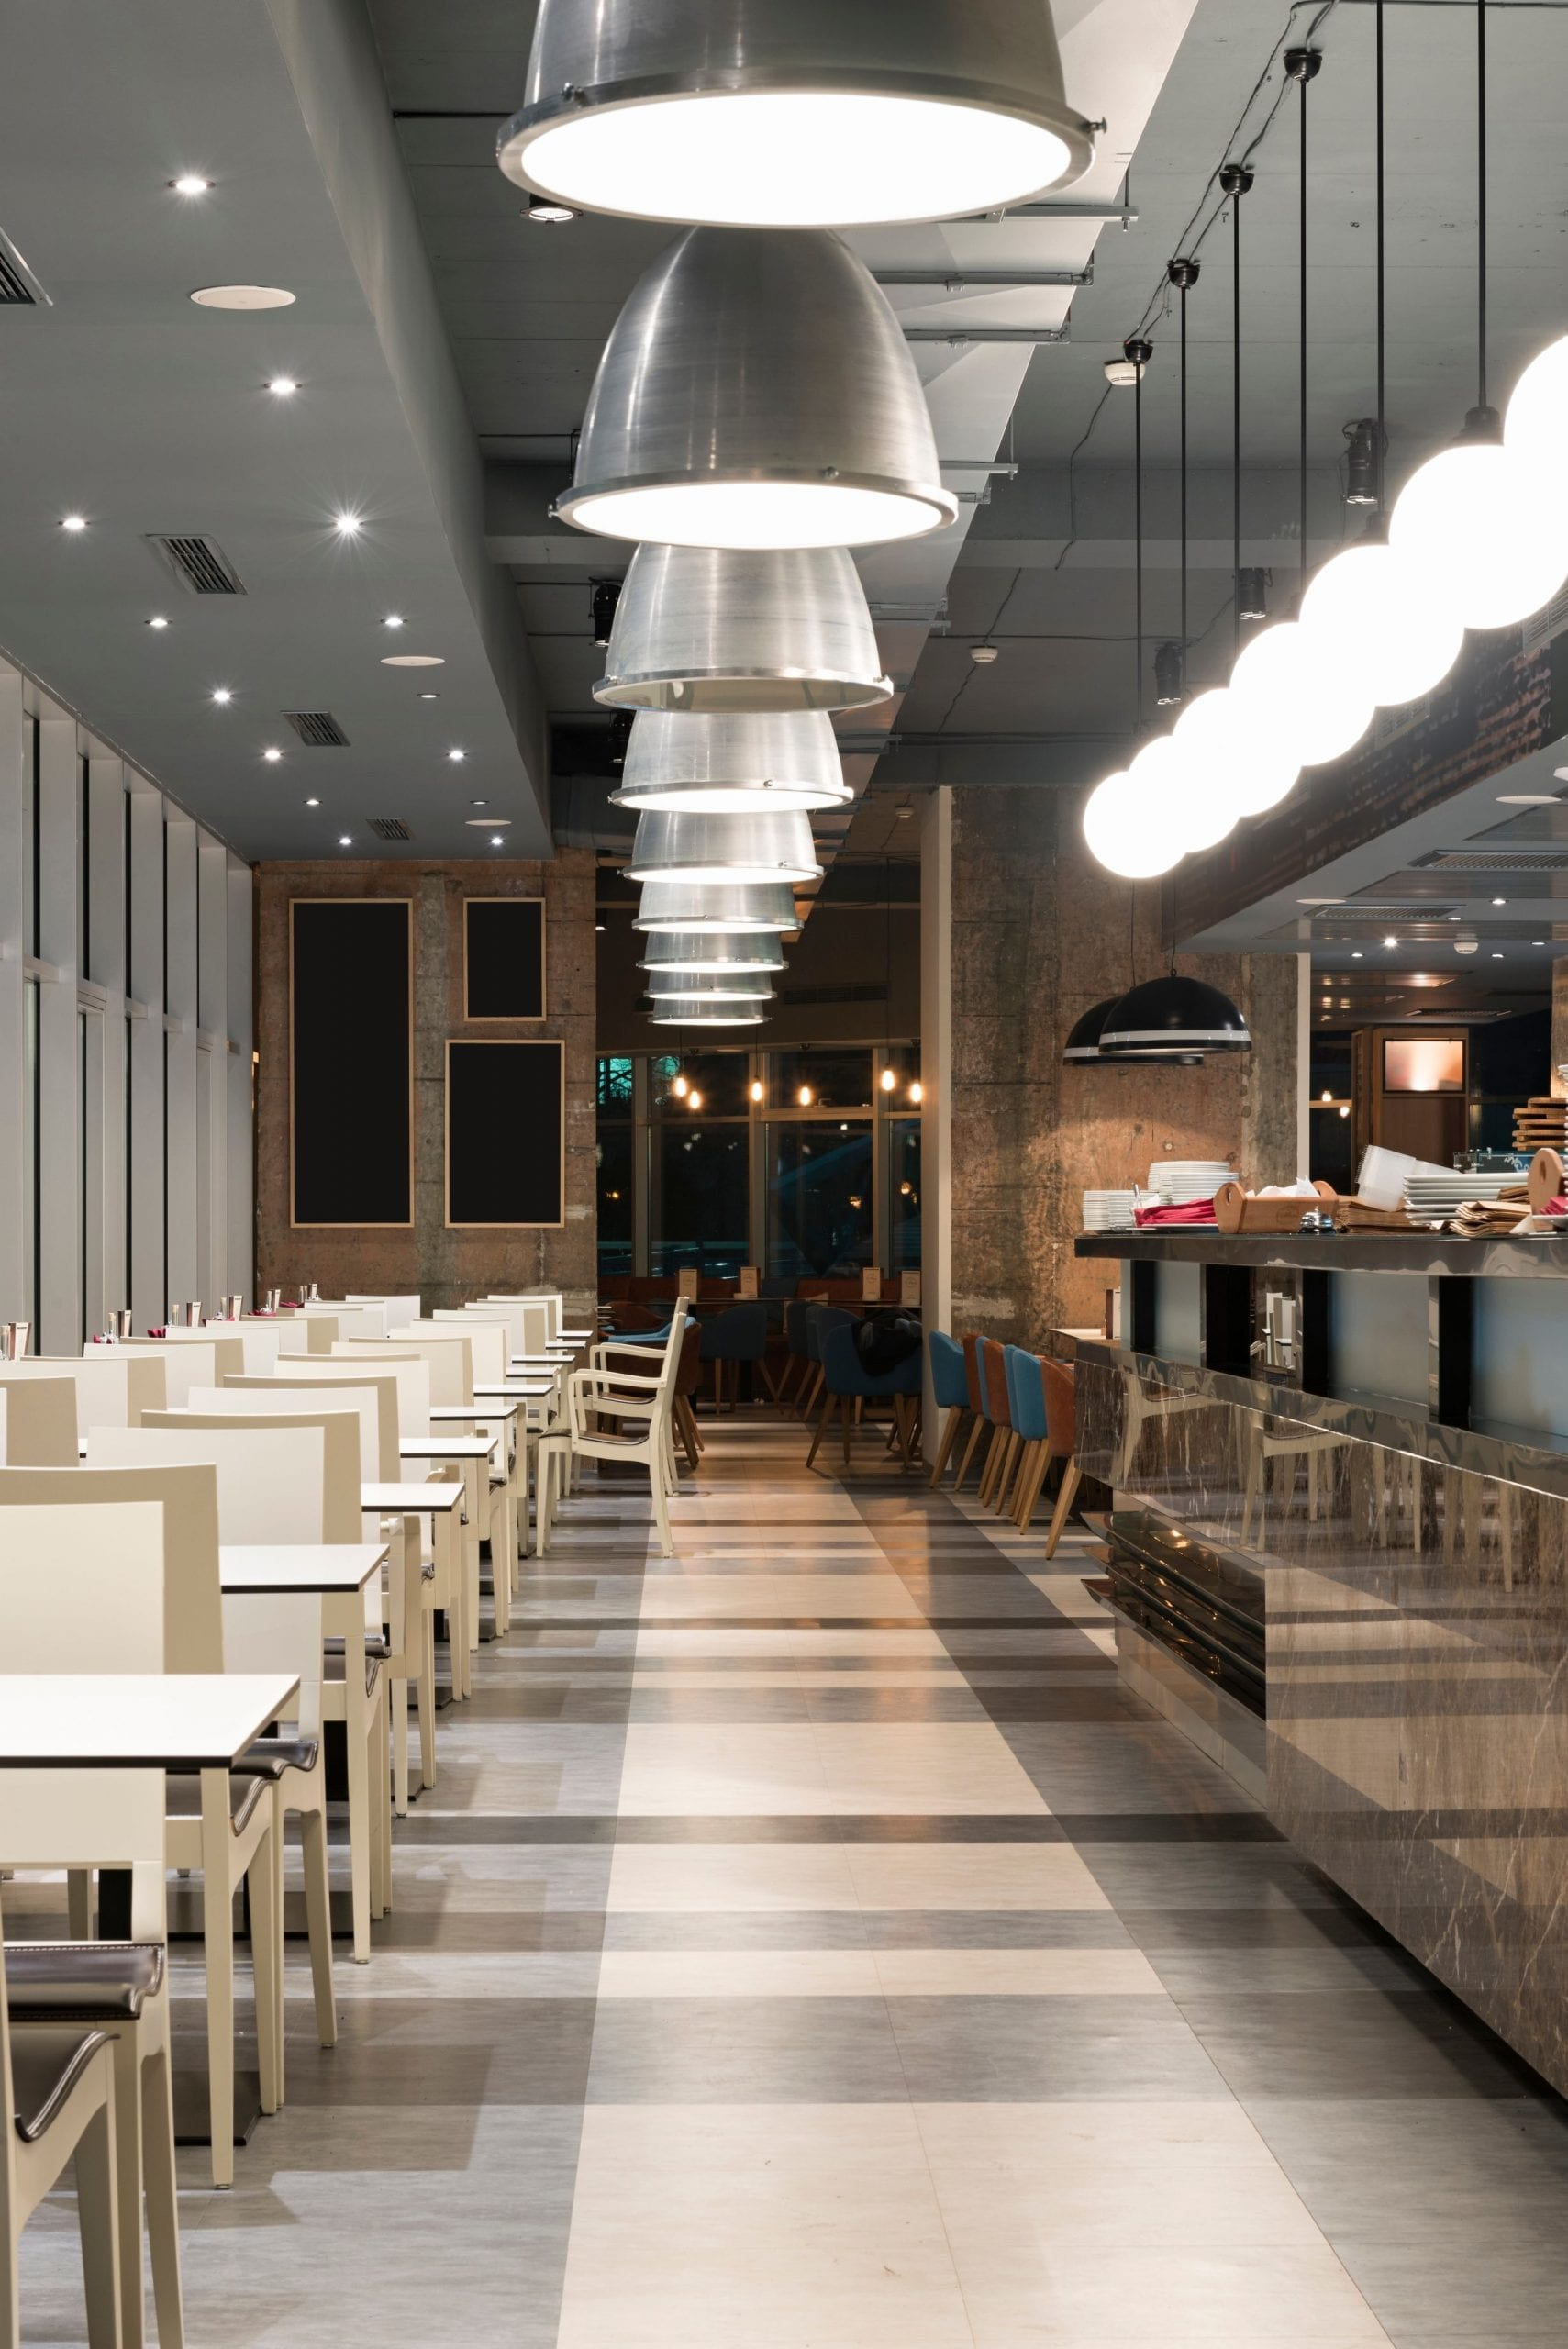 Restaurant LED Lighting - AFS Electrical Services